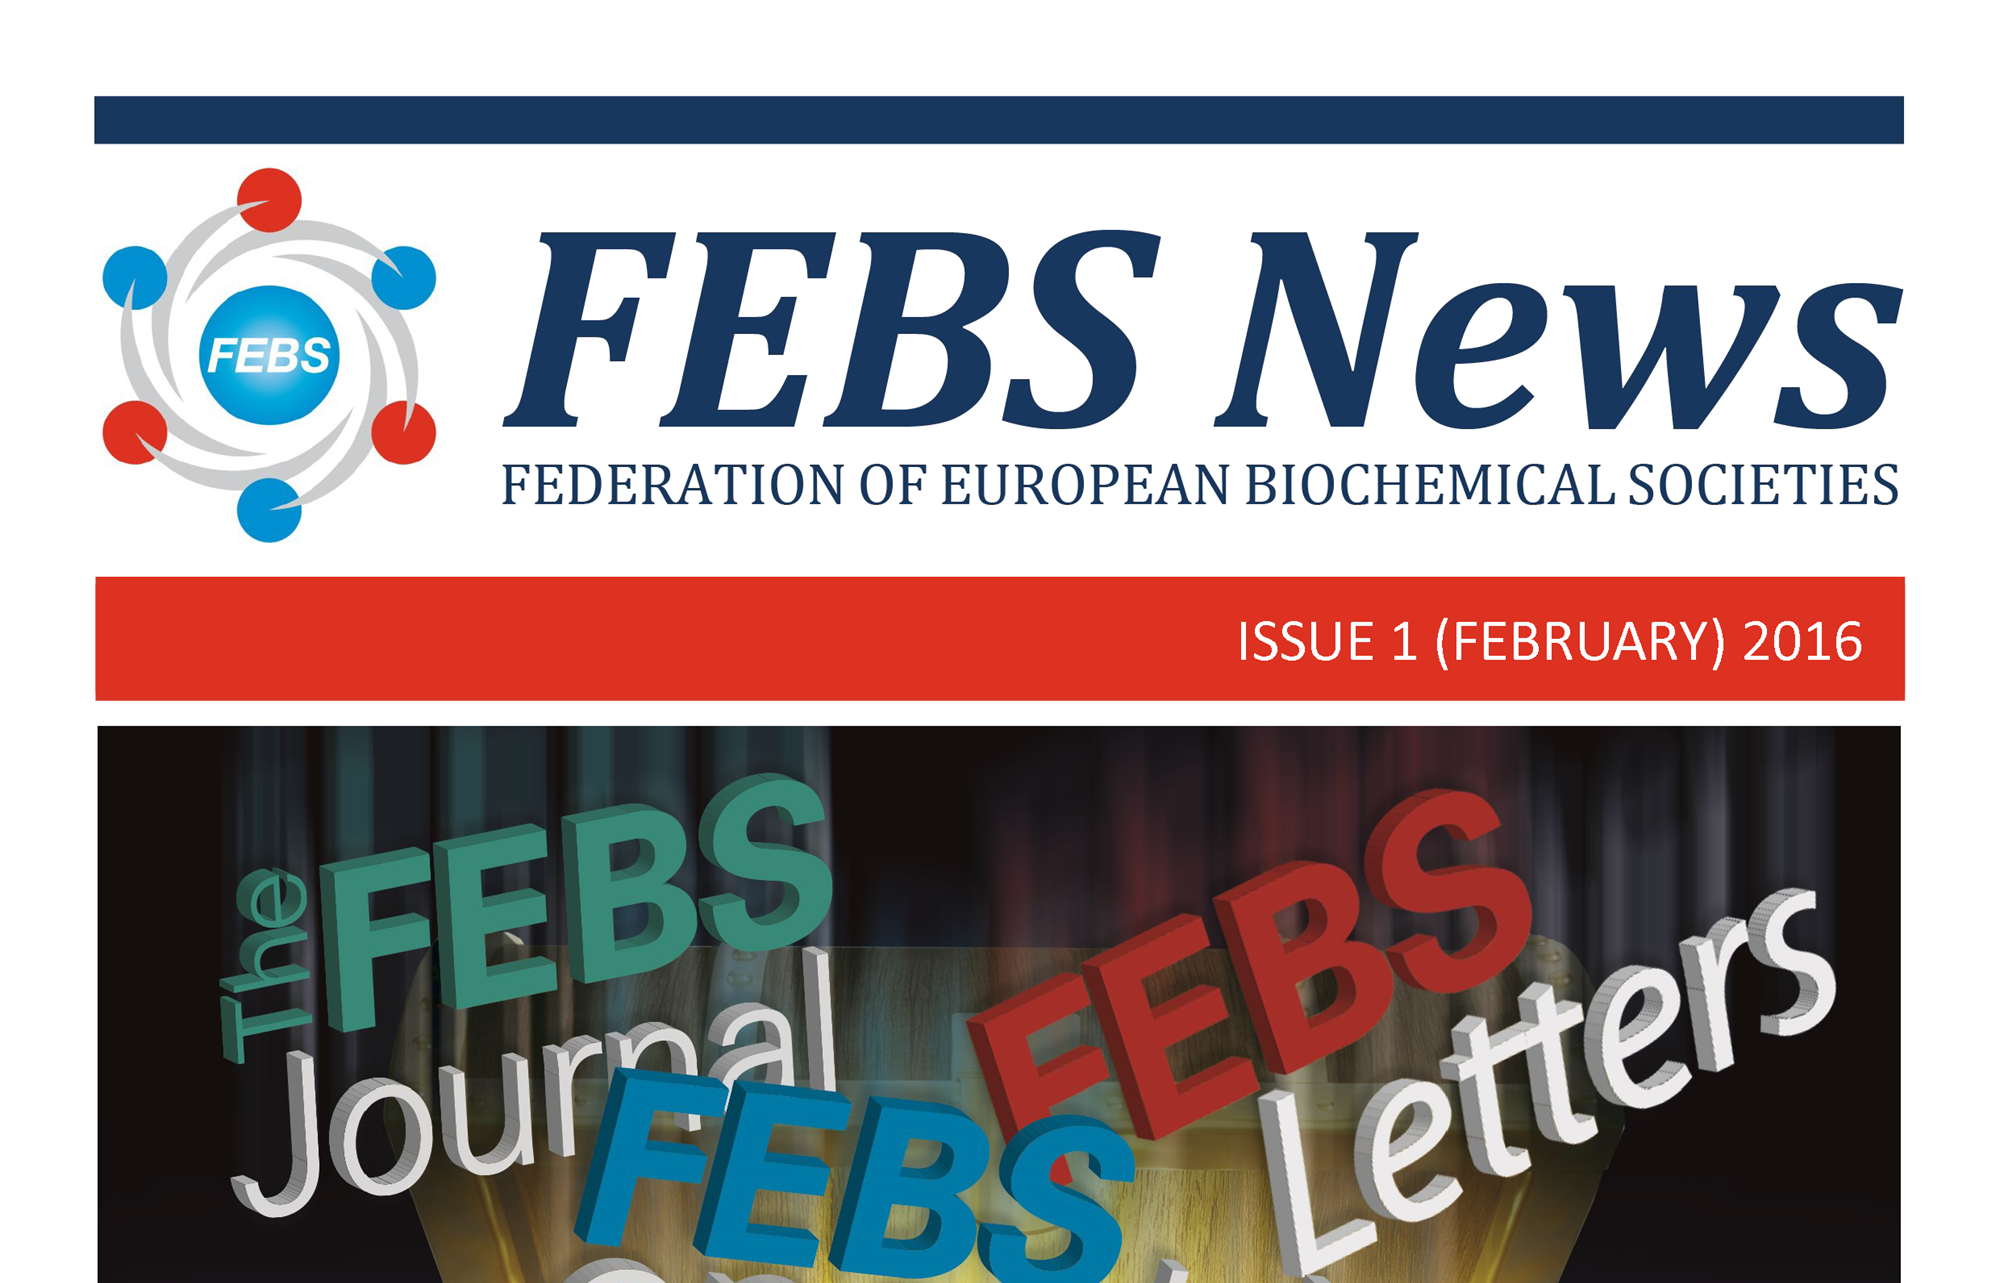 A new FEBS News issue is out!